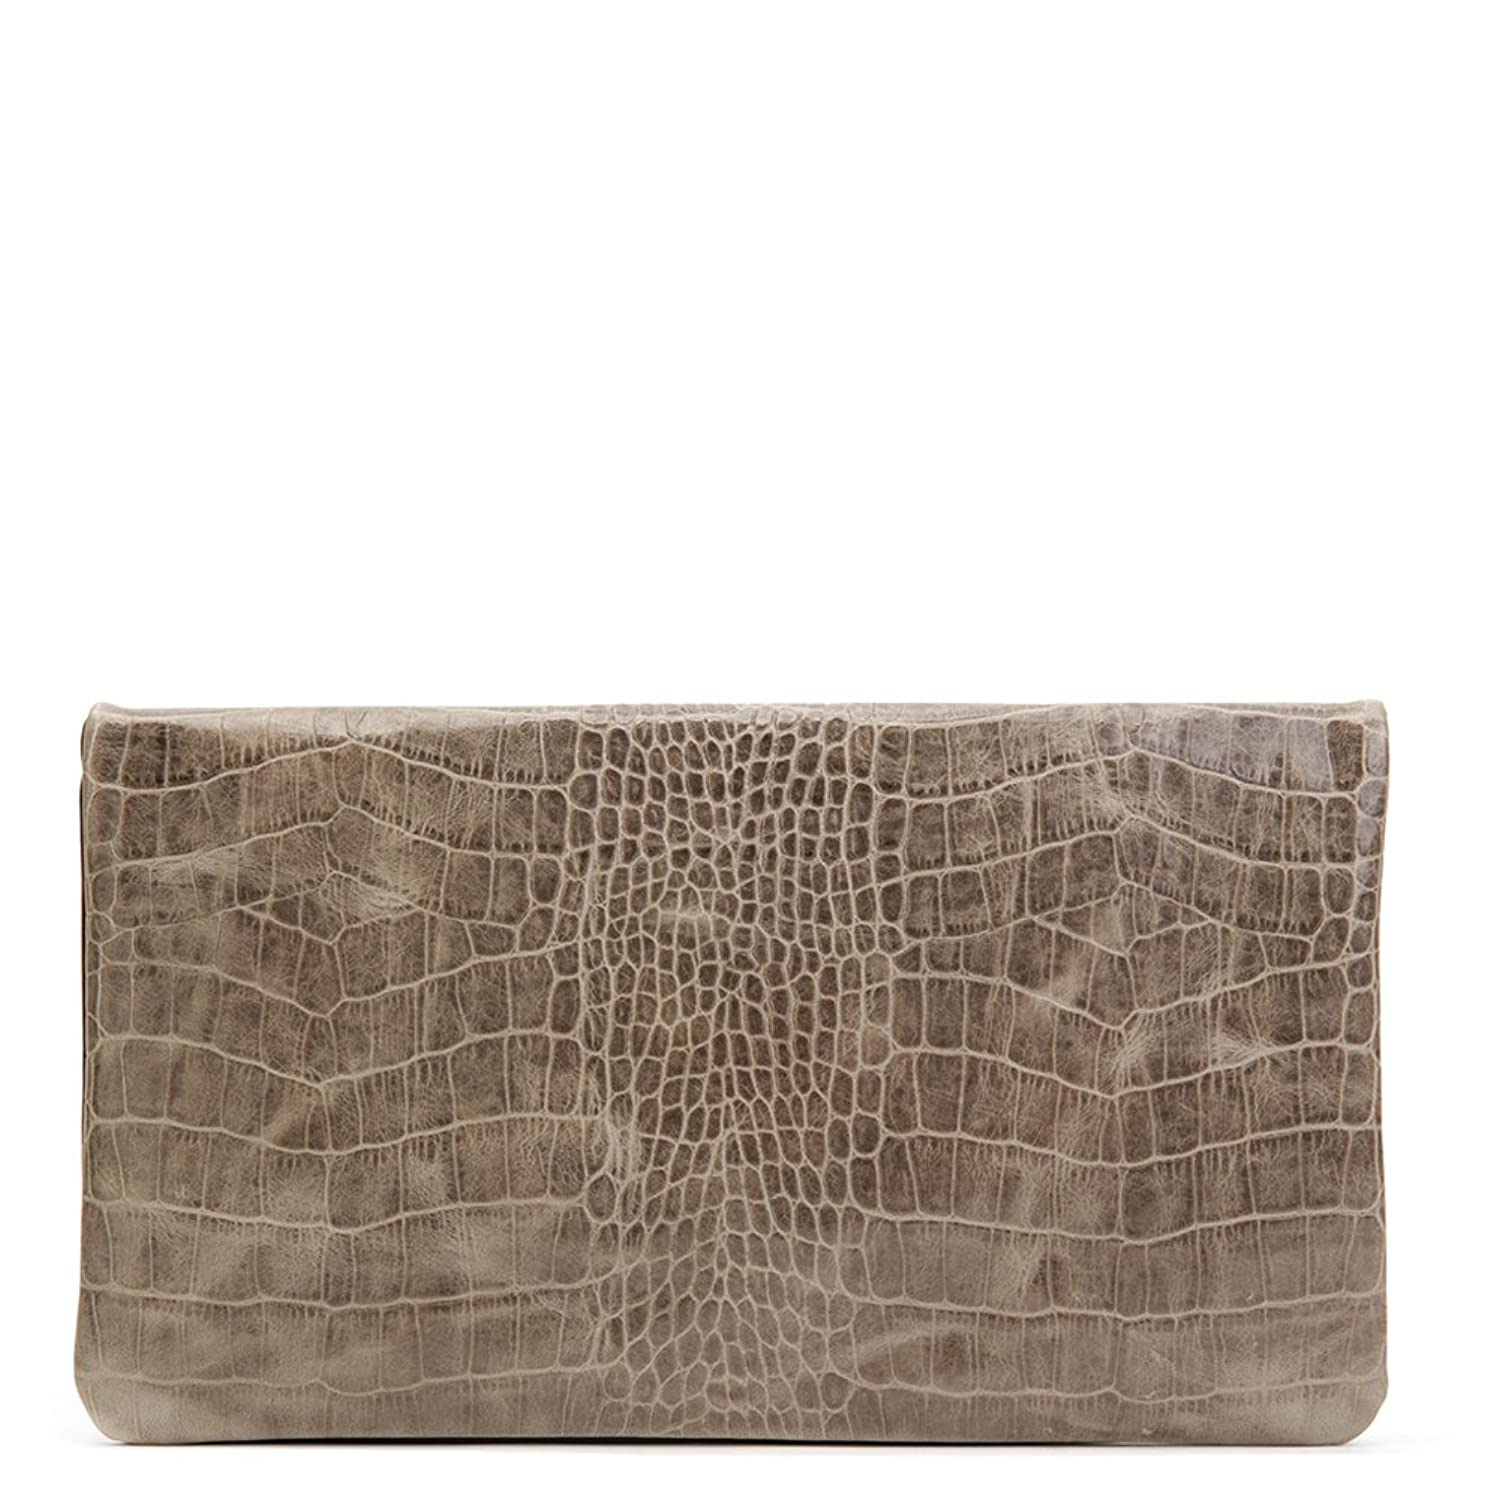 Clare Vivier Women's Foldover Clutch Grey/Black One Size